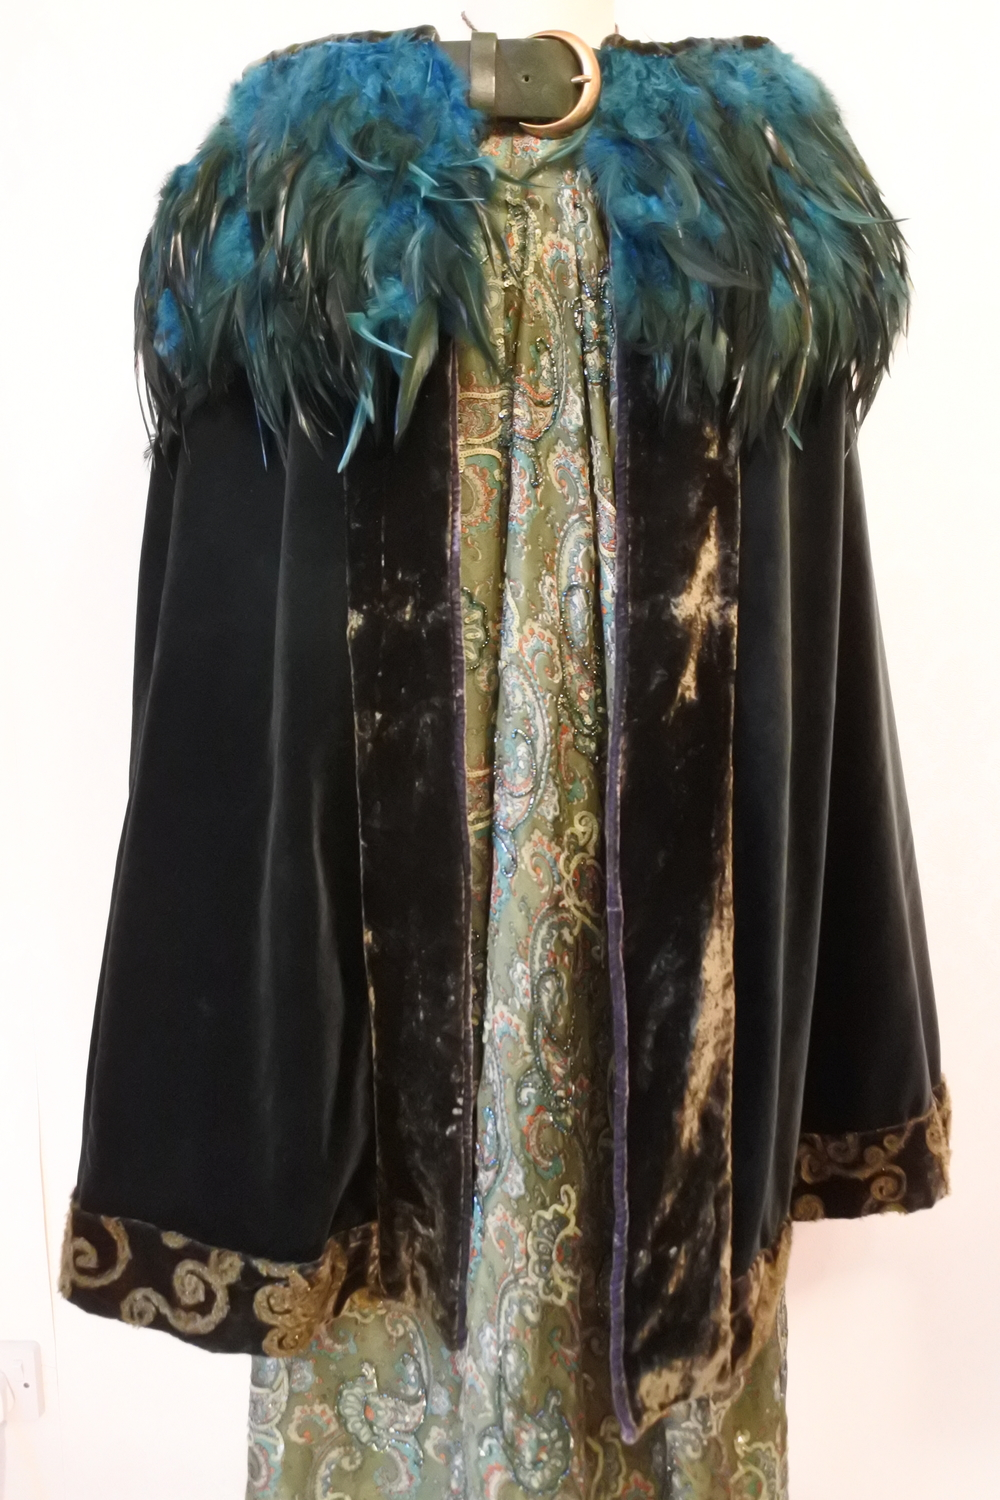 Emerald velvet cape with Celtic hem trim.